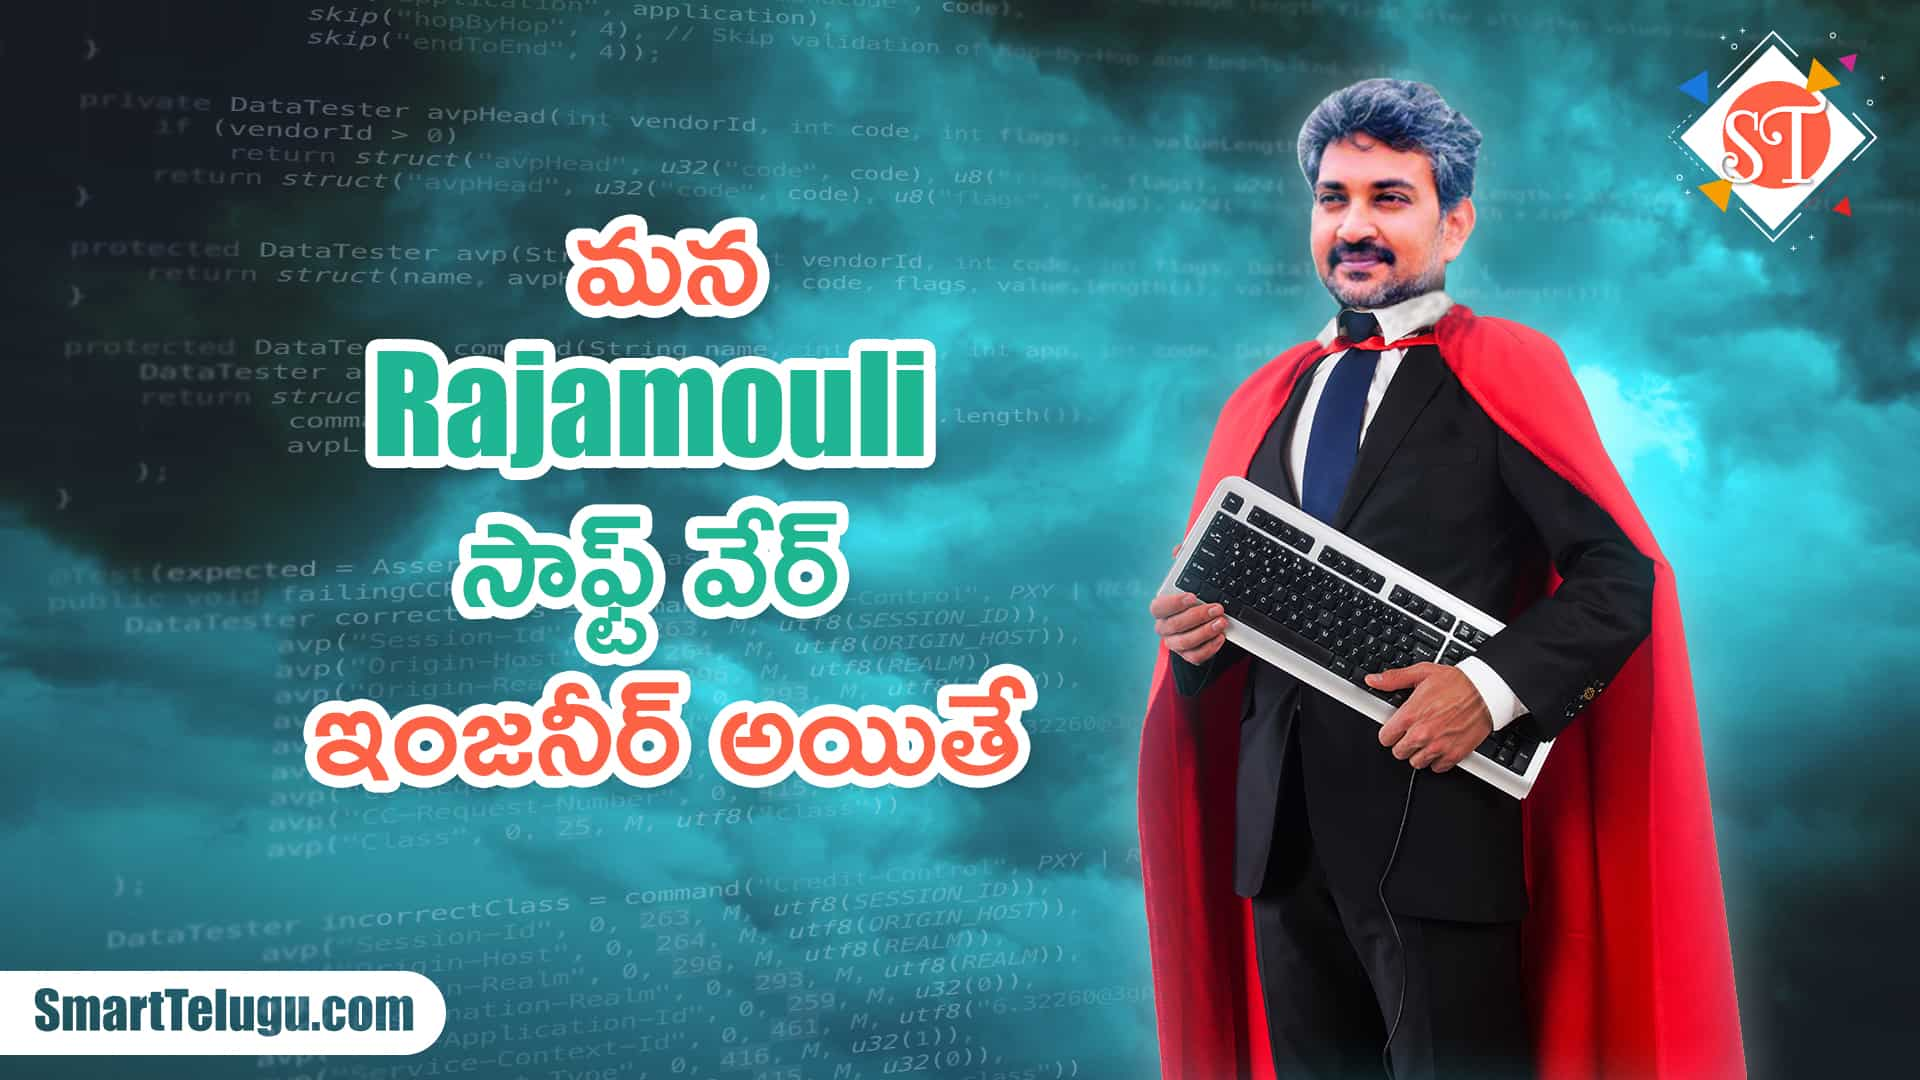 Rajamouli Software